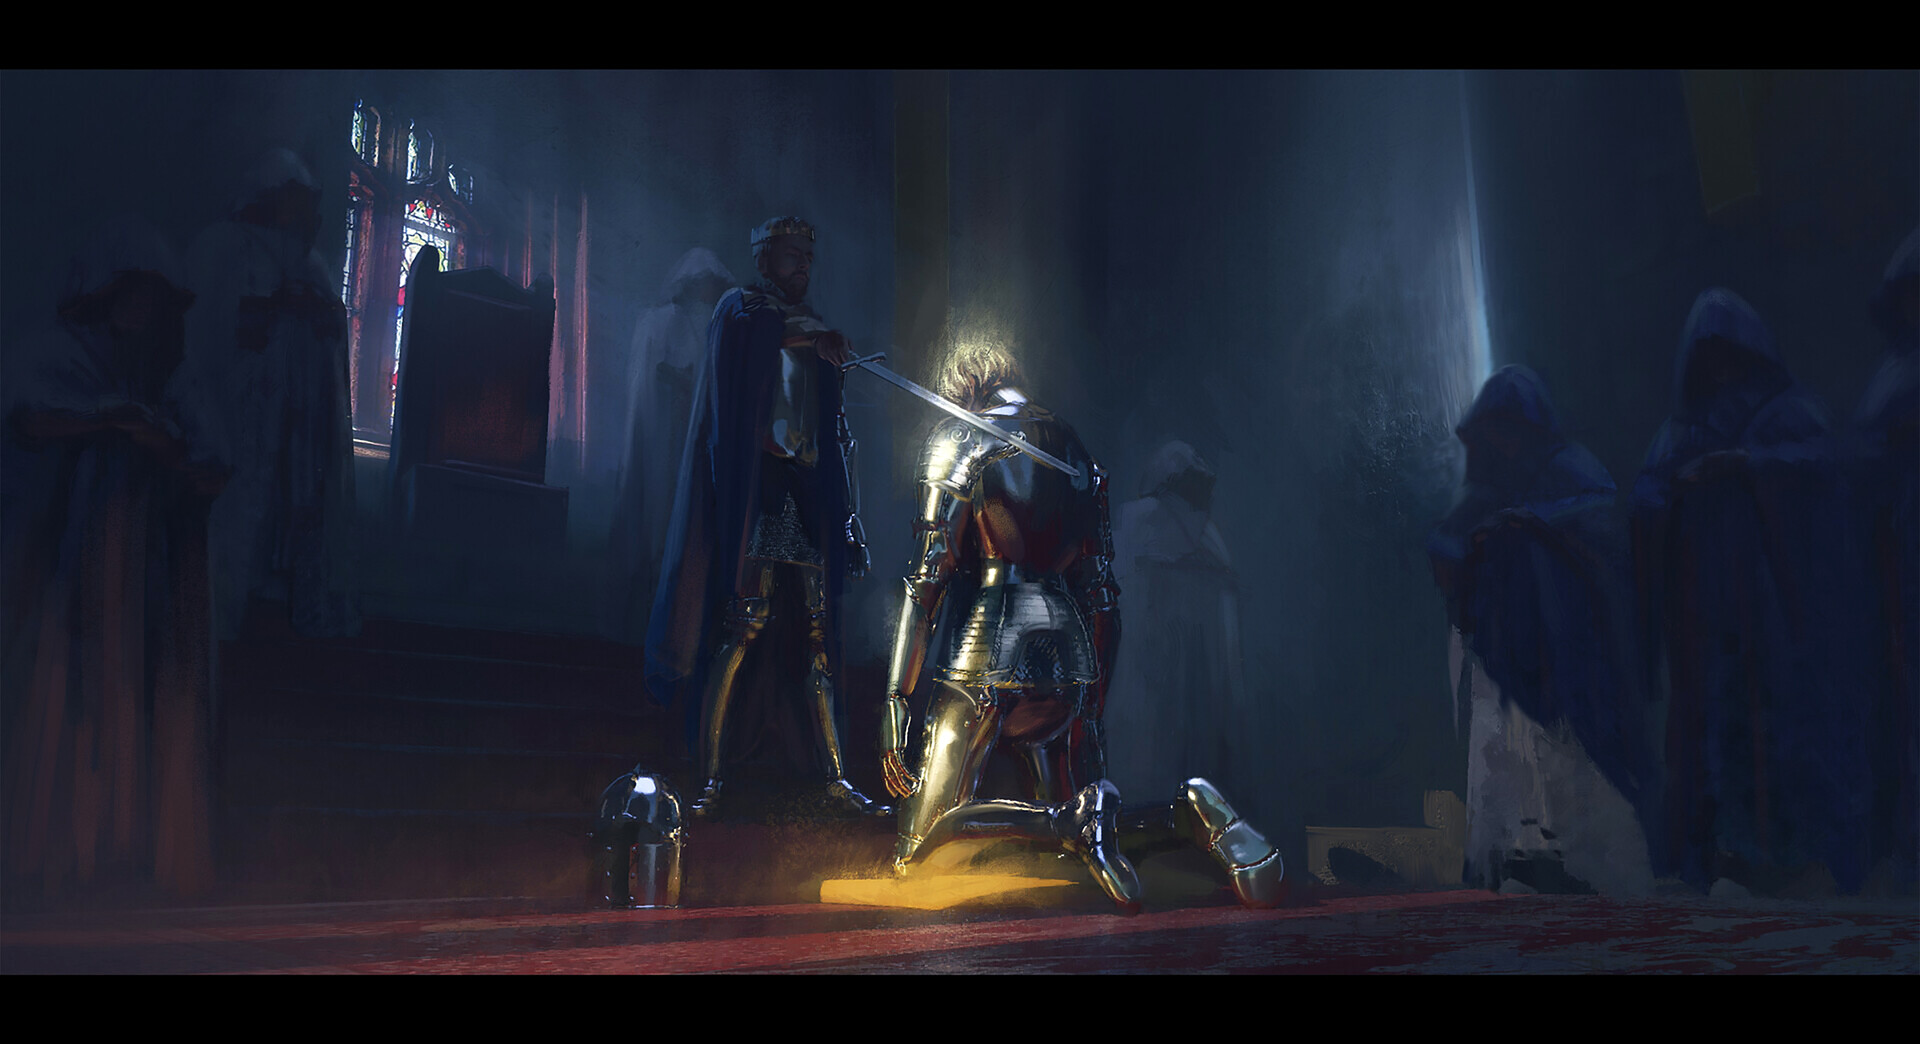 Pace wilder knighting paintover 2